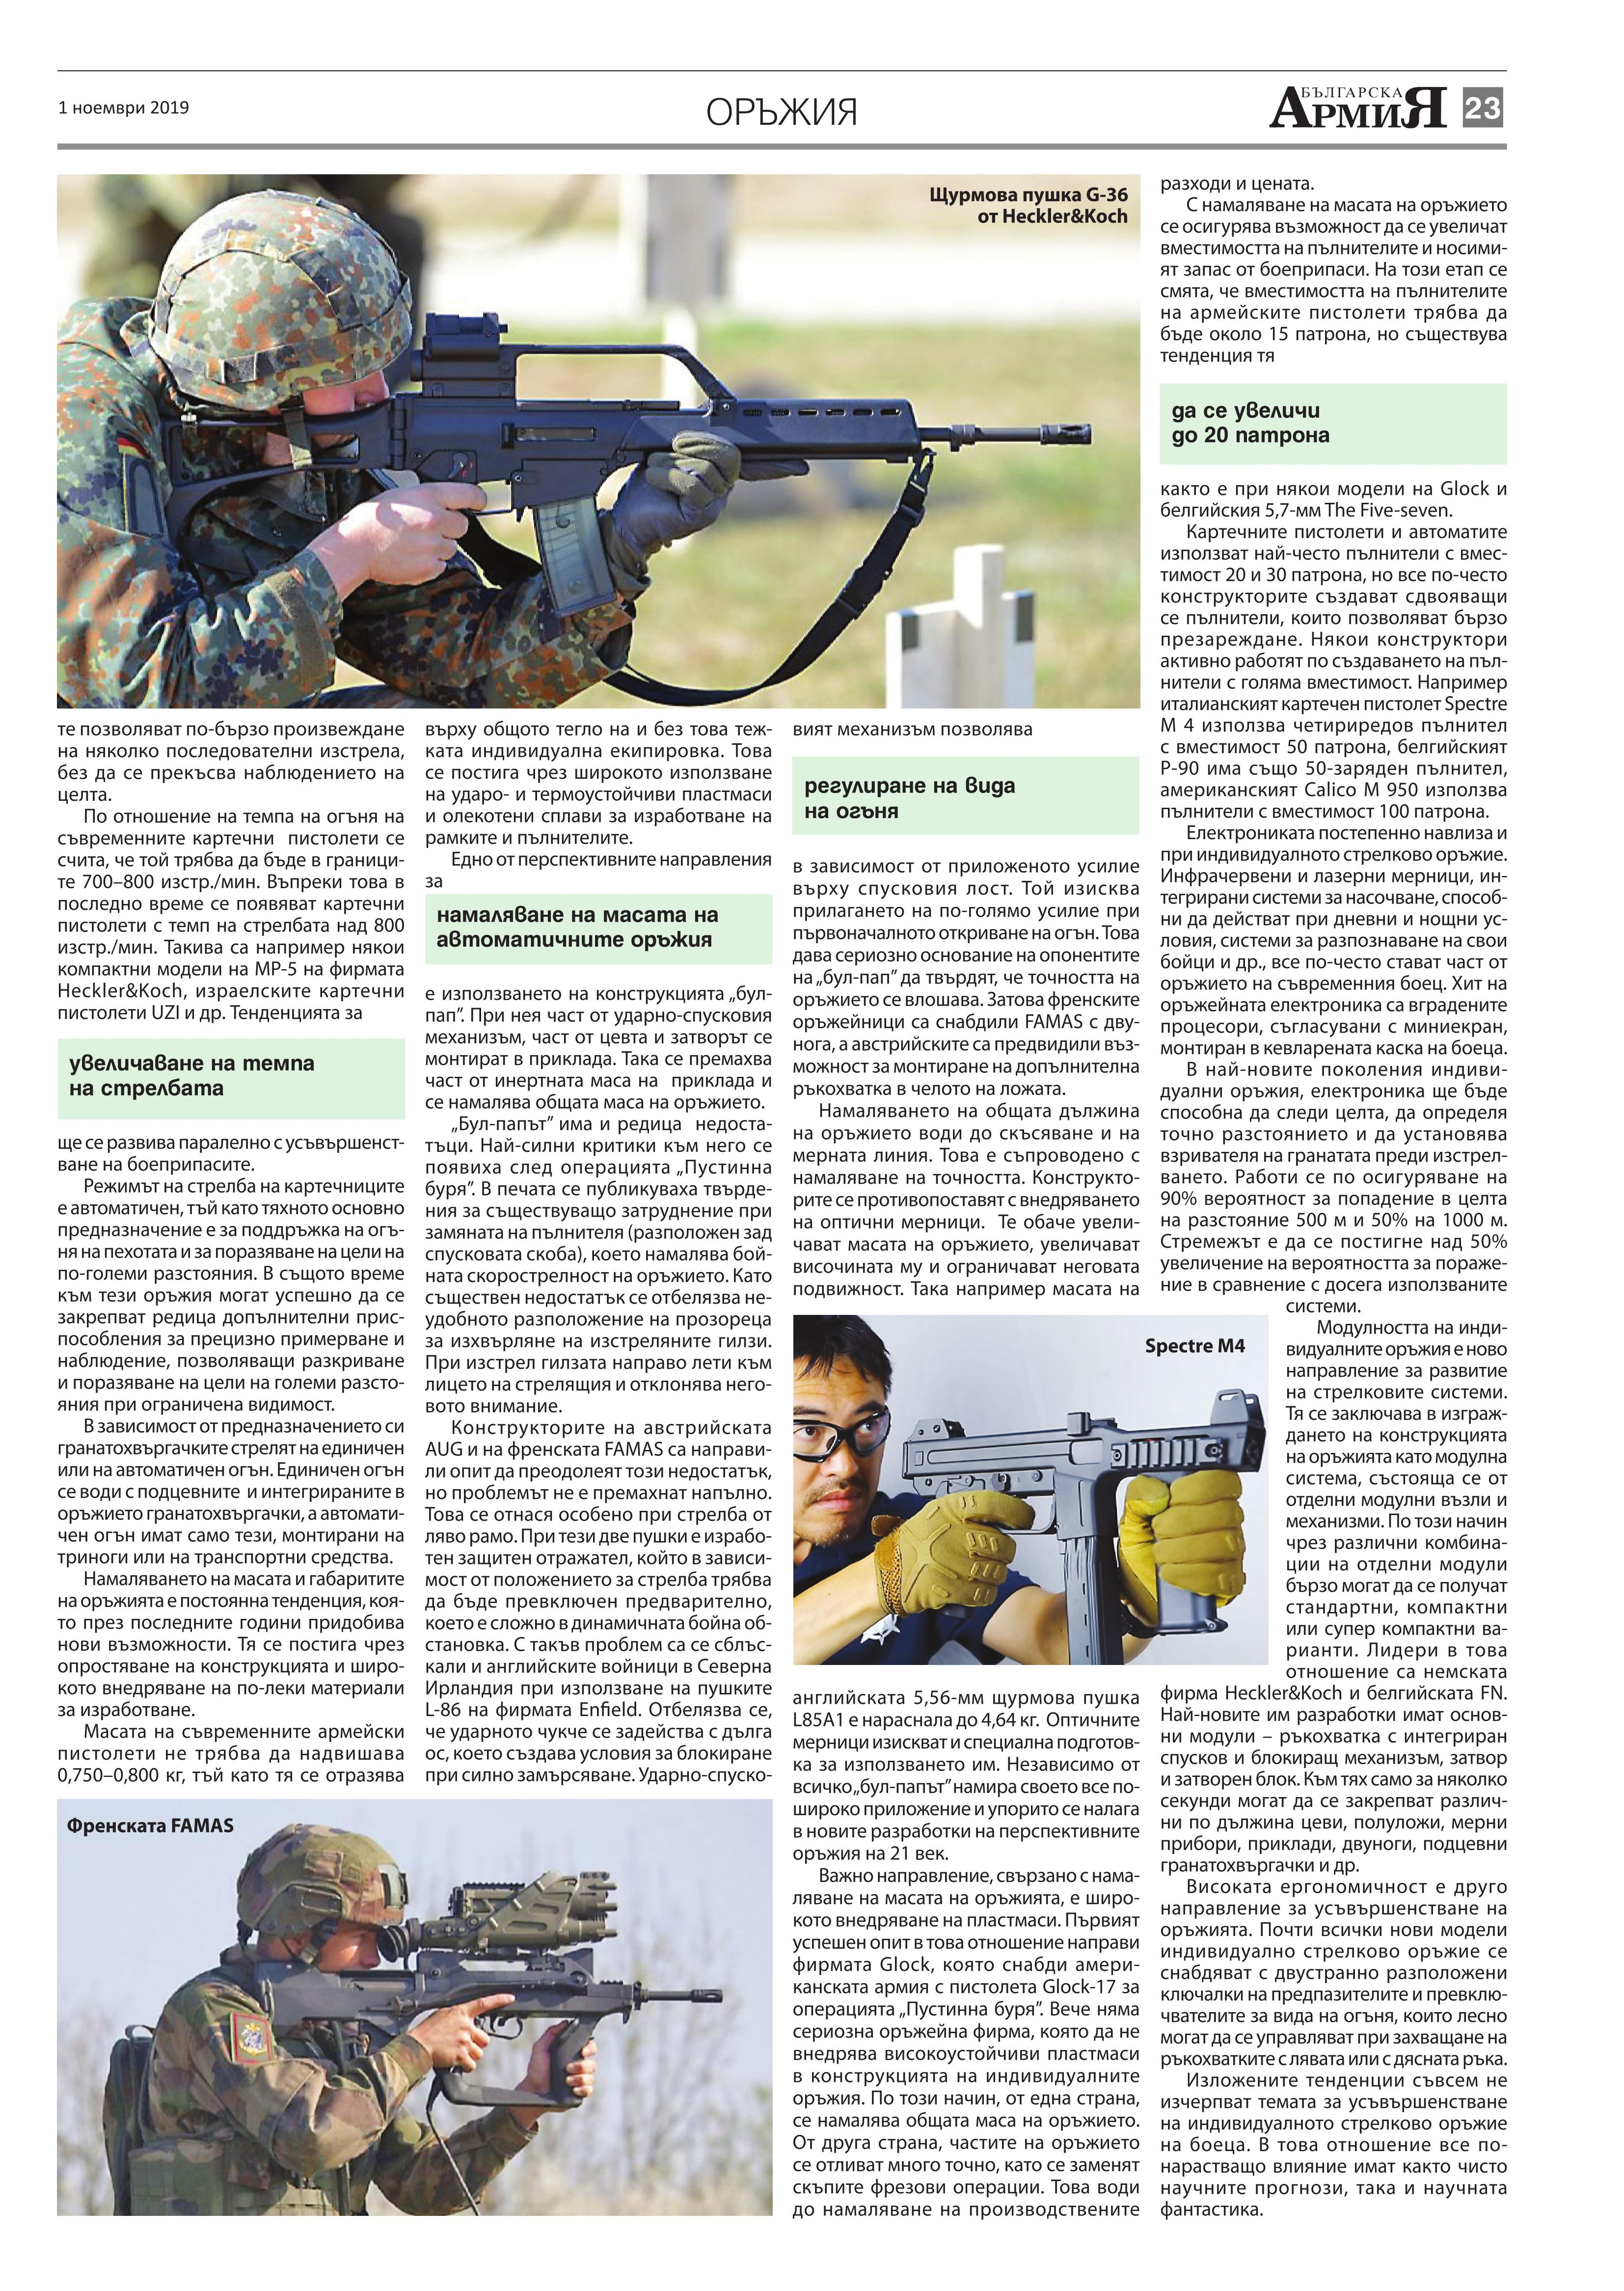 https://www.armymedia.bg/wp-content/uploads/2015/06/23.page1_-114.jpg